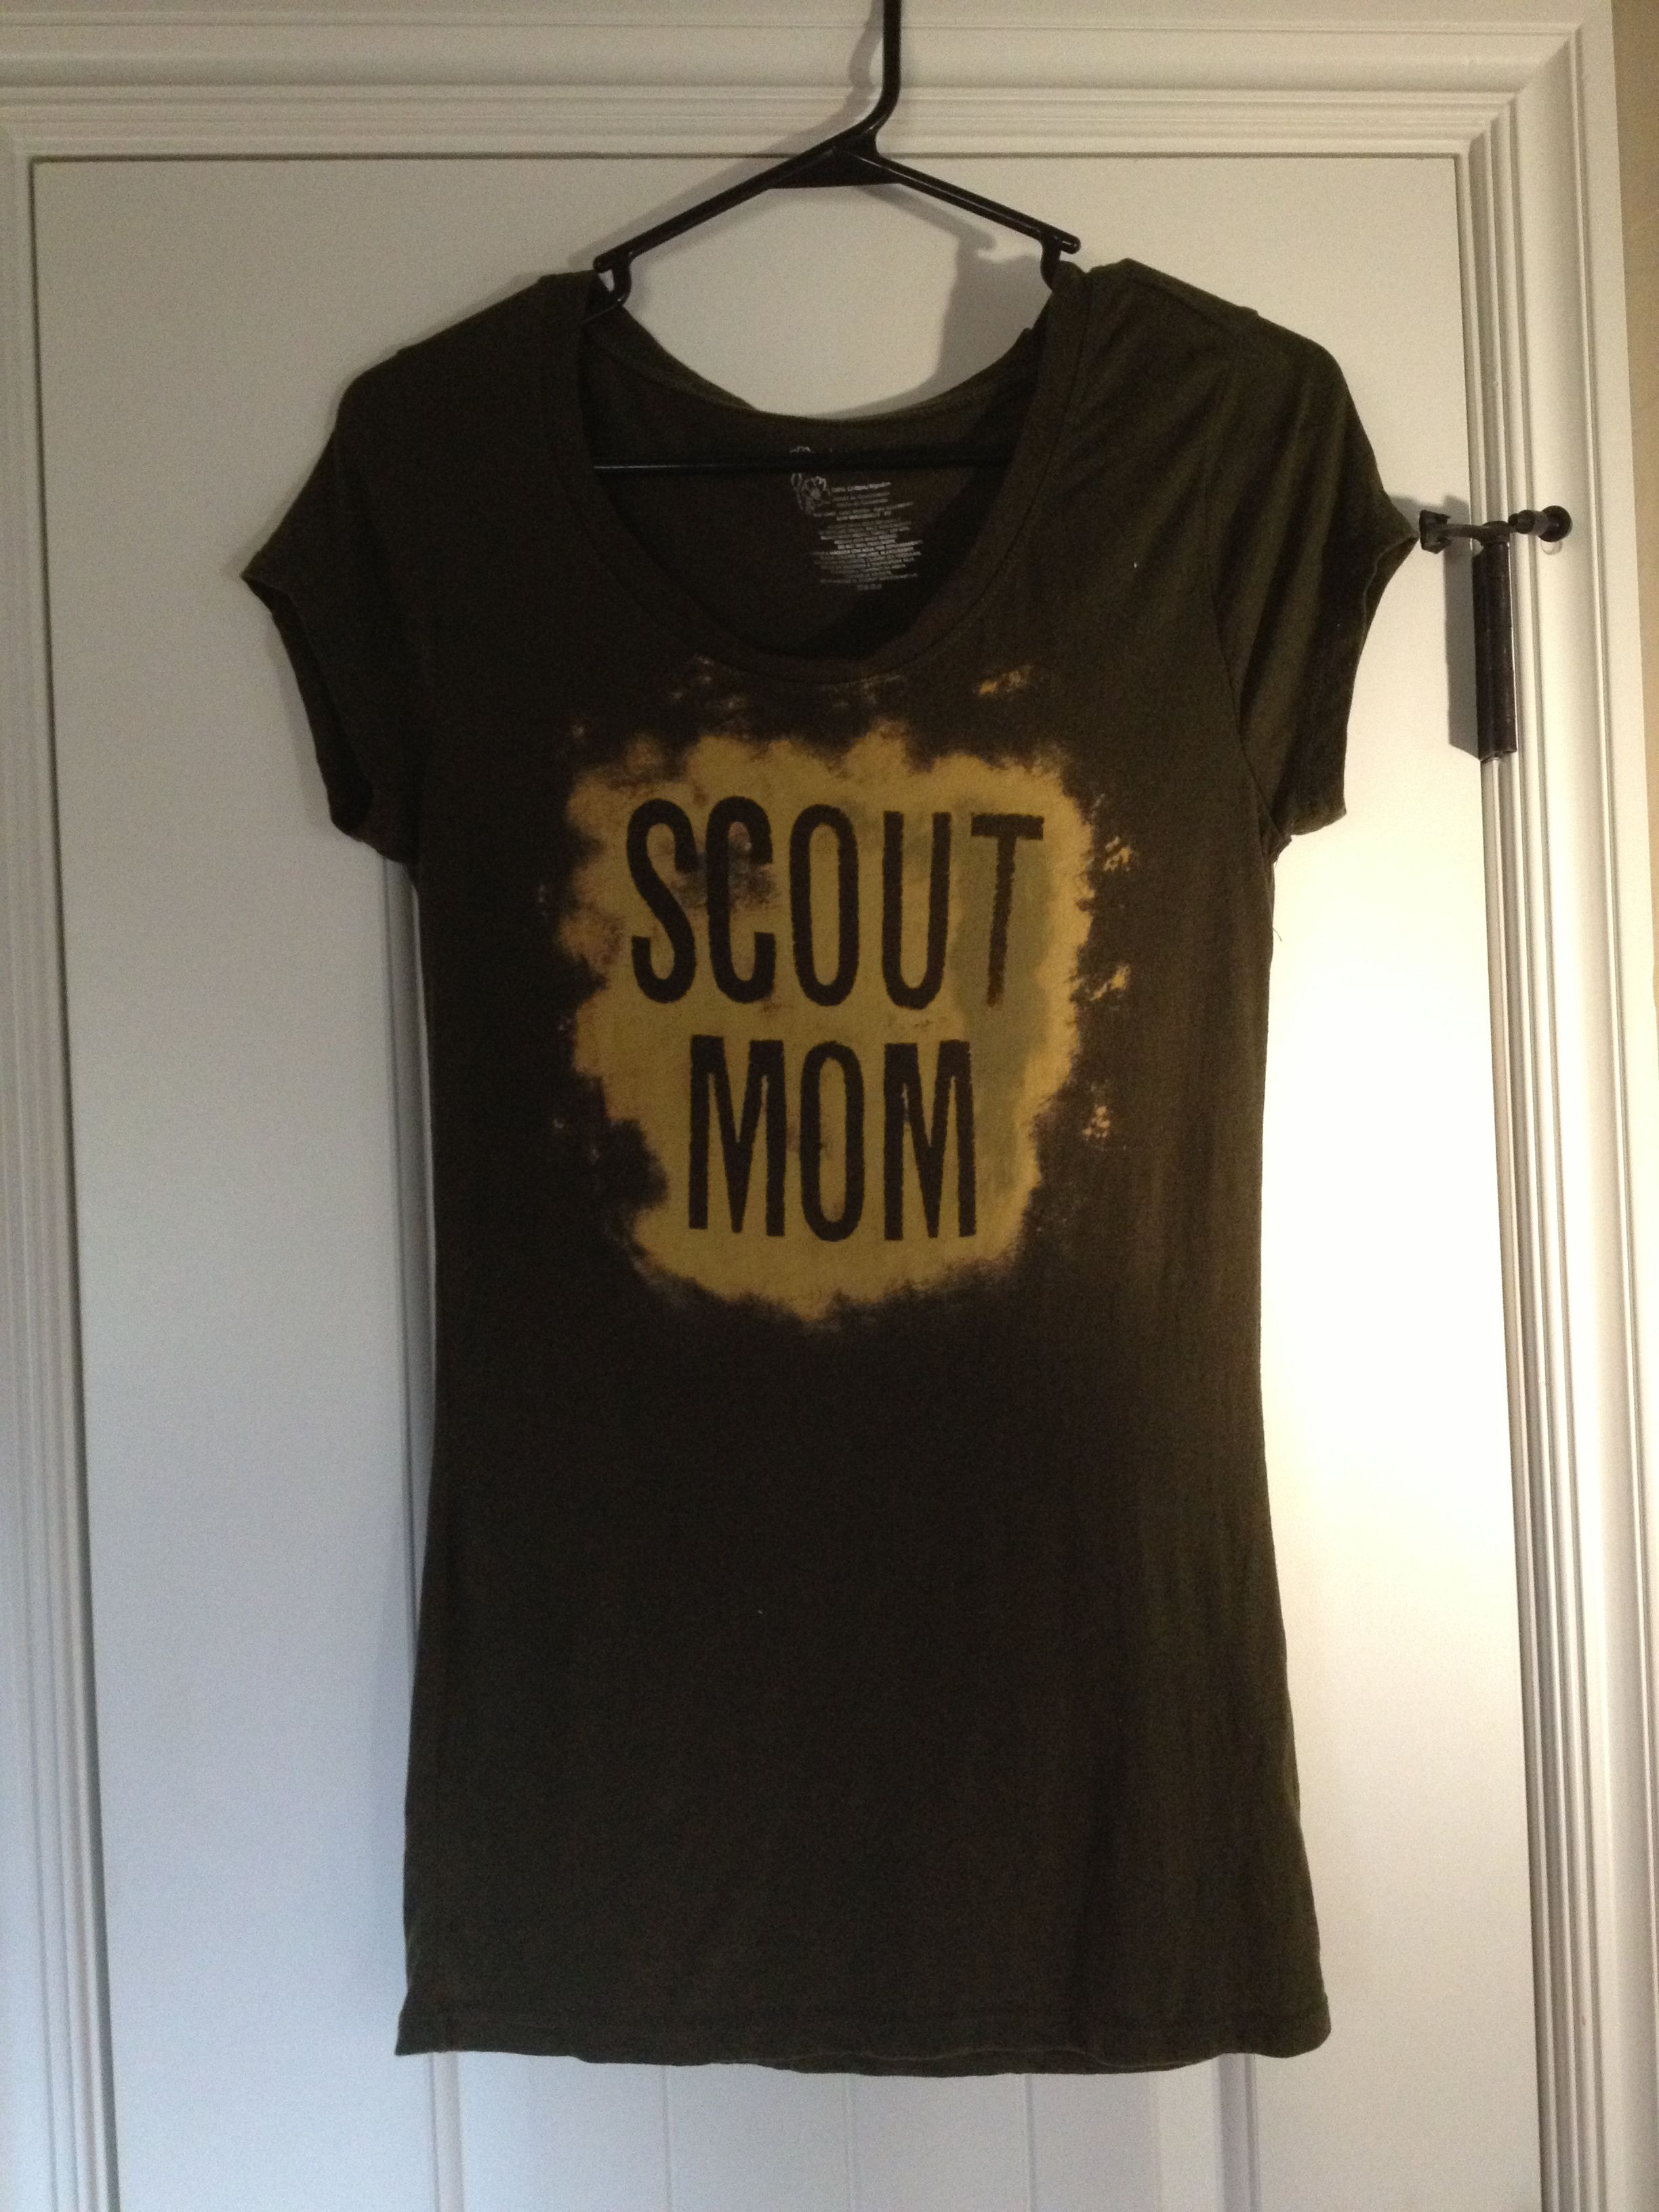 Scout Mom Tshirt 100 Cotton Shirt Stick On Vinyl